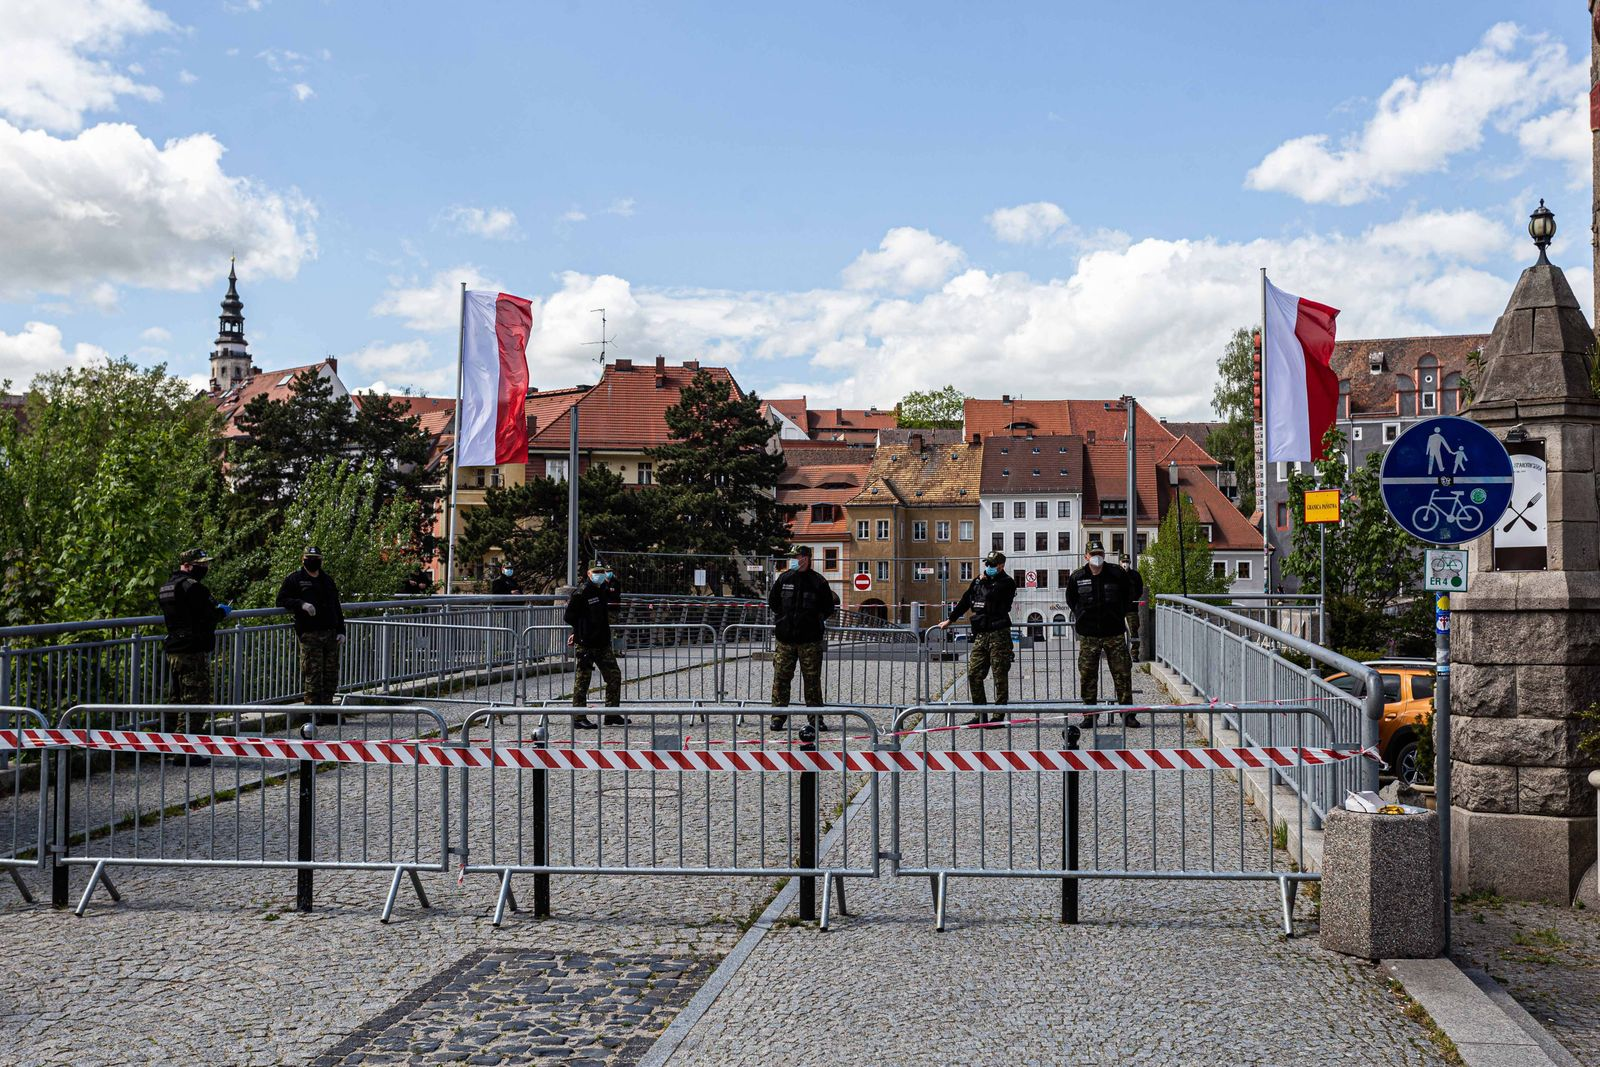 May 1, 2020, Wroclaw, Poland: 1 May 2020 Zgorzelec Poland The closed Polish-German border in Zgorzelec / Goerlitz. The b